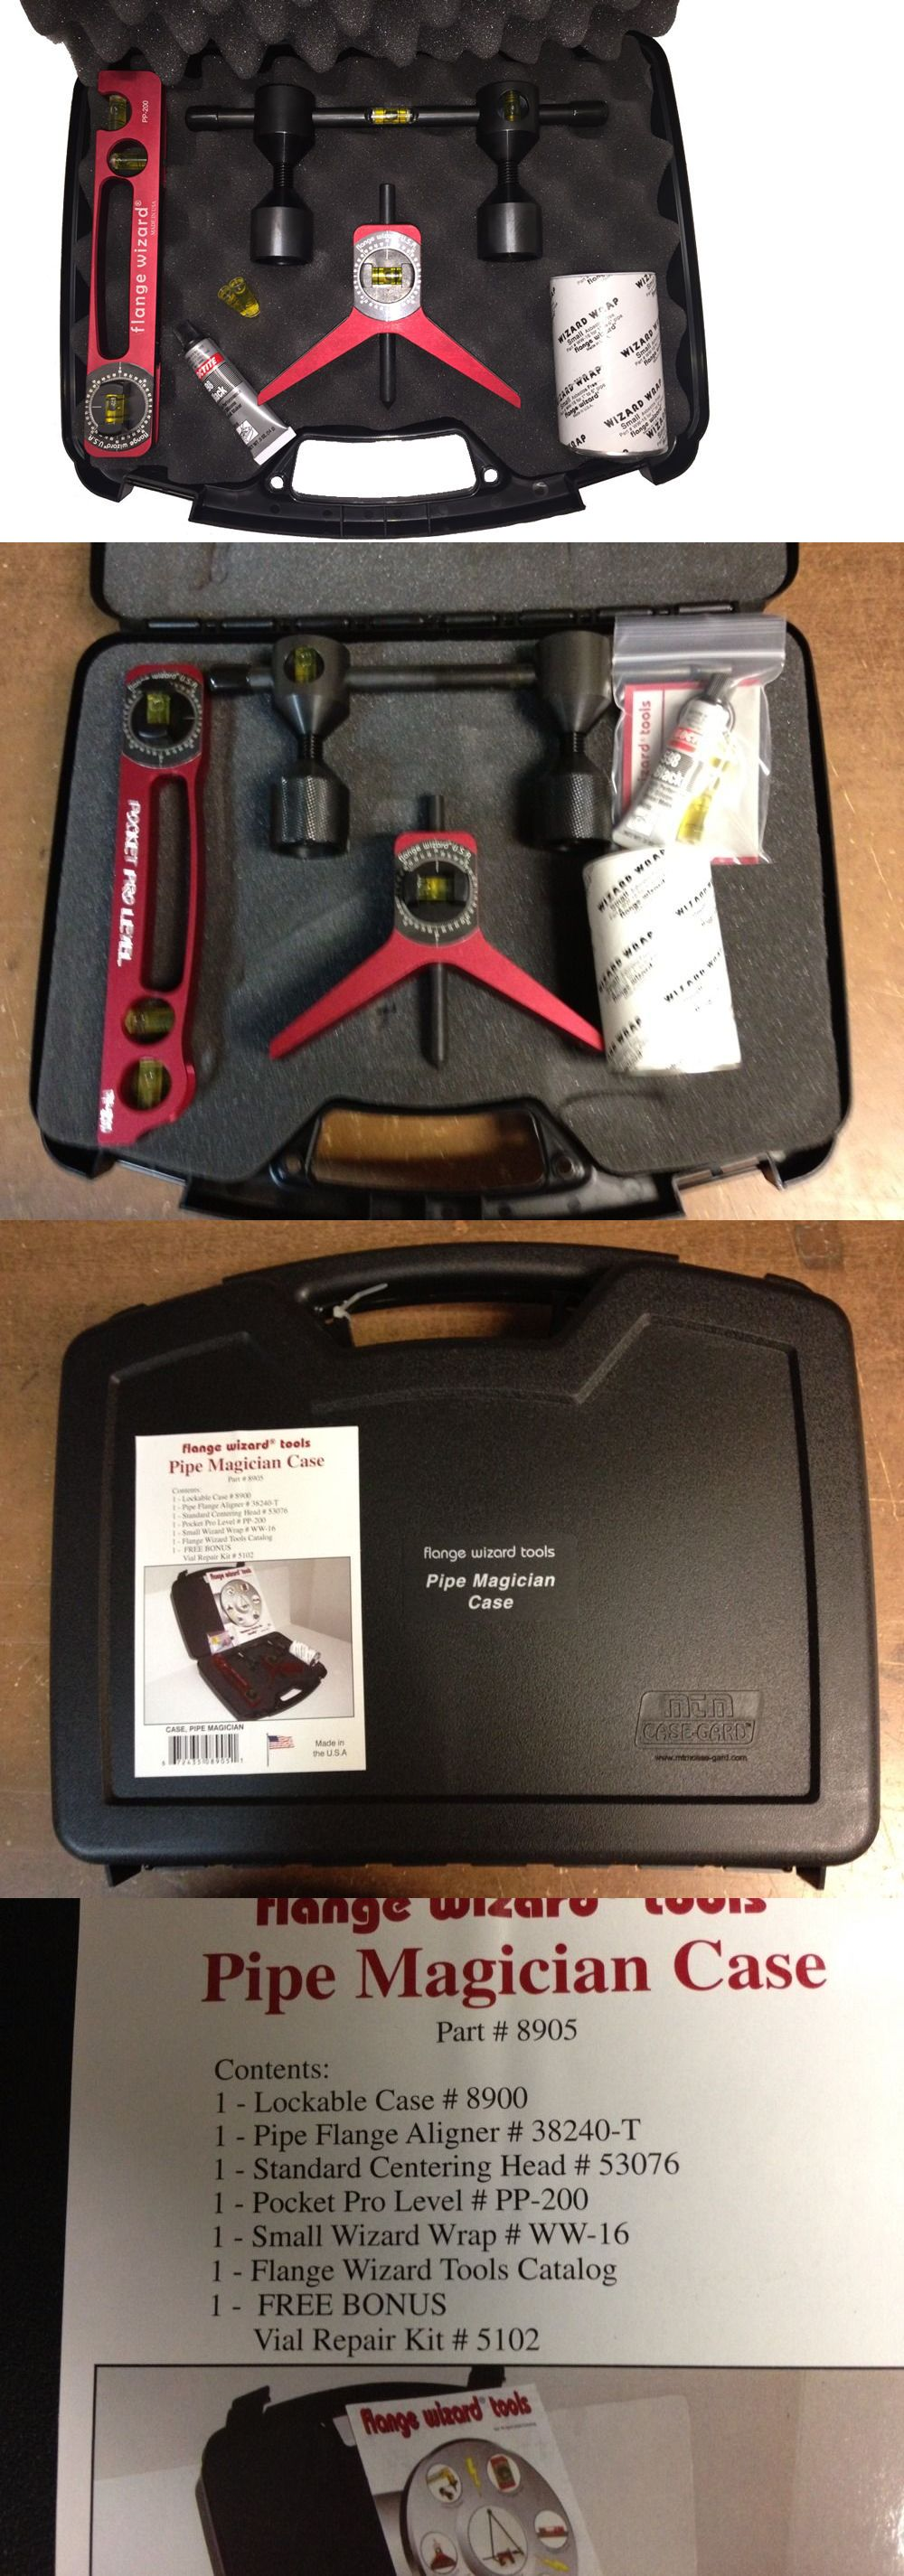 Welding and Soldering Tools 46413: Flange Wizard 8905 Pipe Magicians Work Kit -> BUY IT NOW ONLY: $240 on eBay!